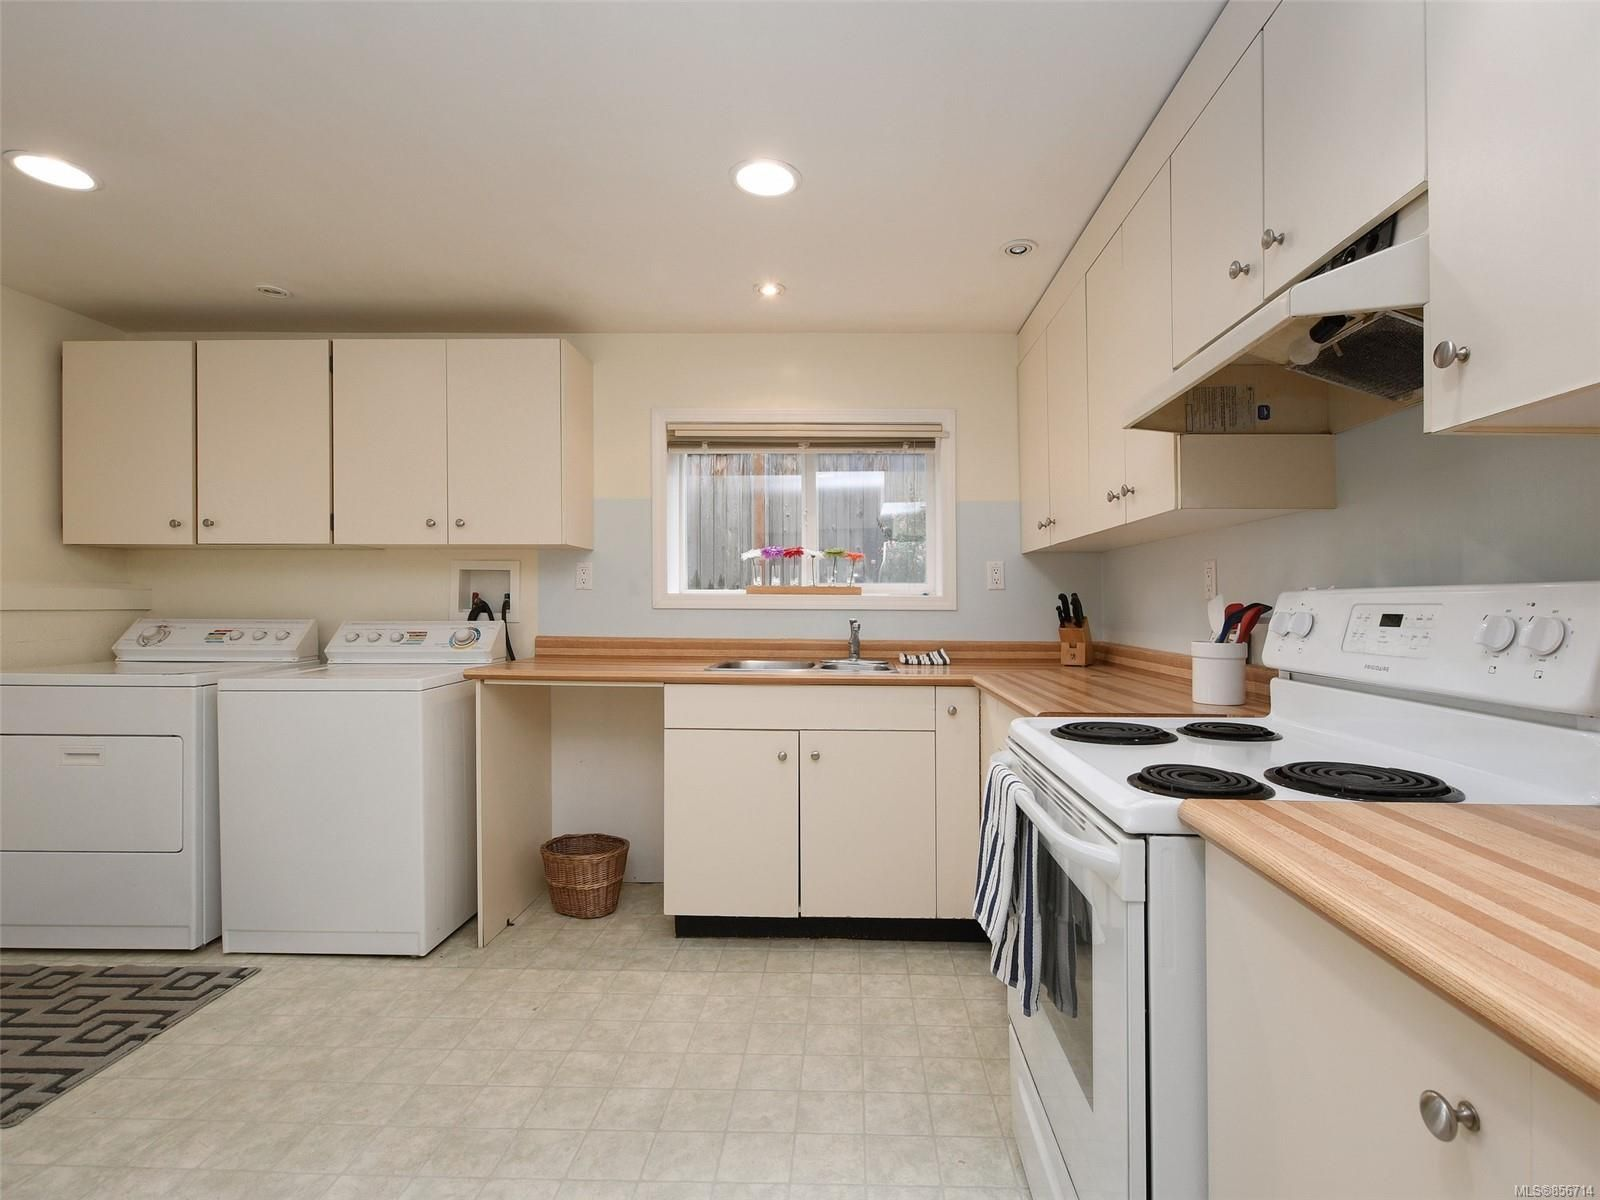 Photo 16: Photos: 3909 Ansell Rd in : SE Mt Tolmie House for sale (Saanich East)  : MLS®# 856714